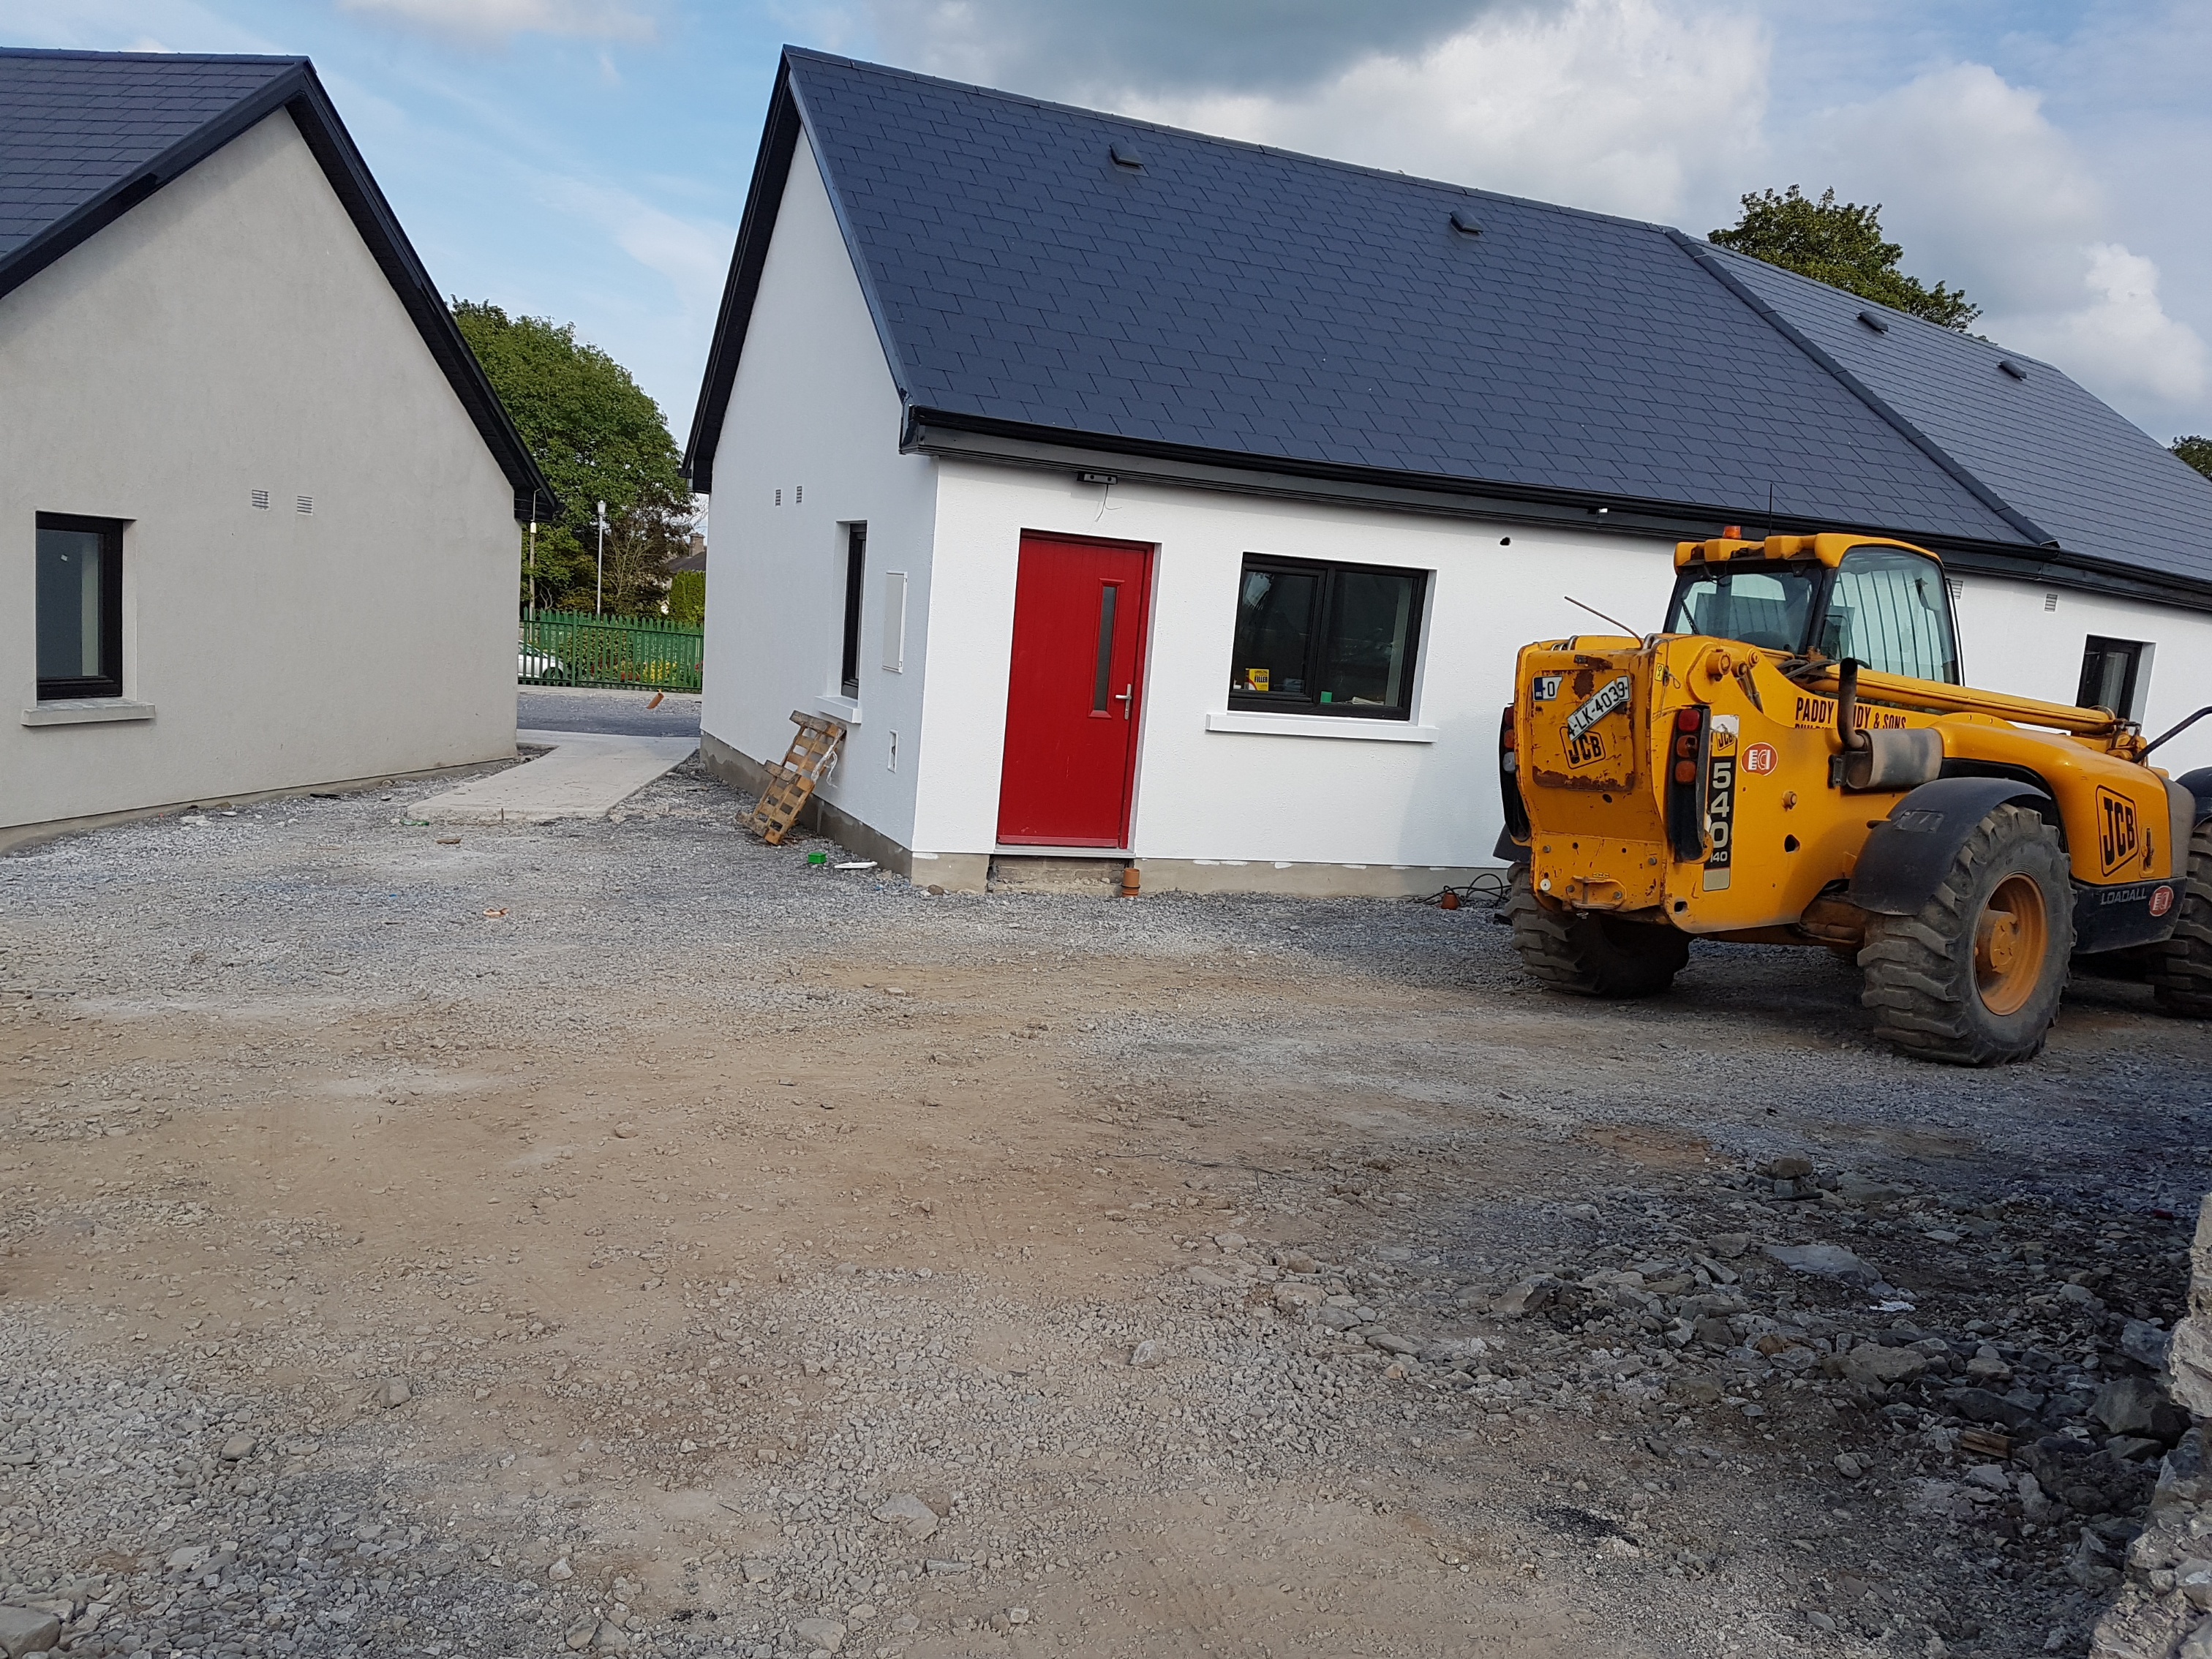 Construction of Housing Project in Charleville Progressing Well – O'Shea